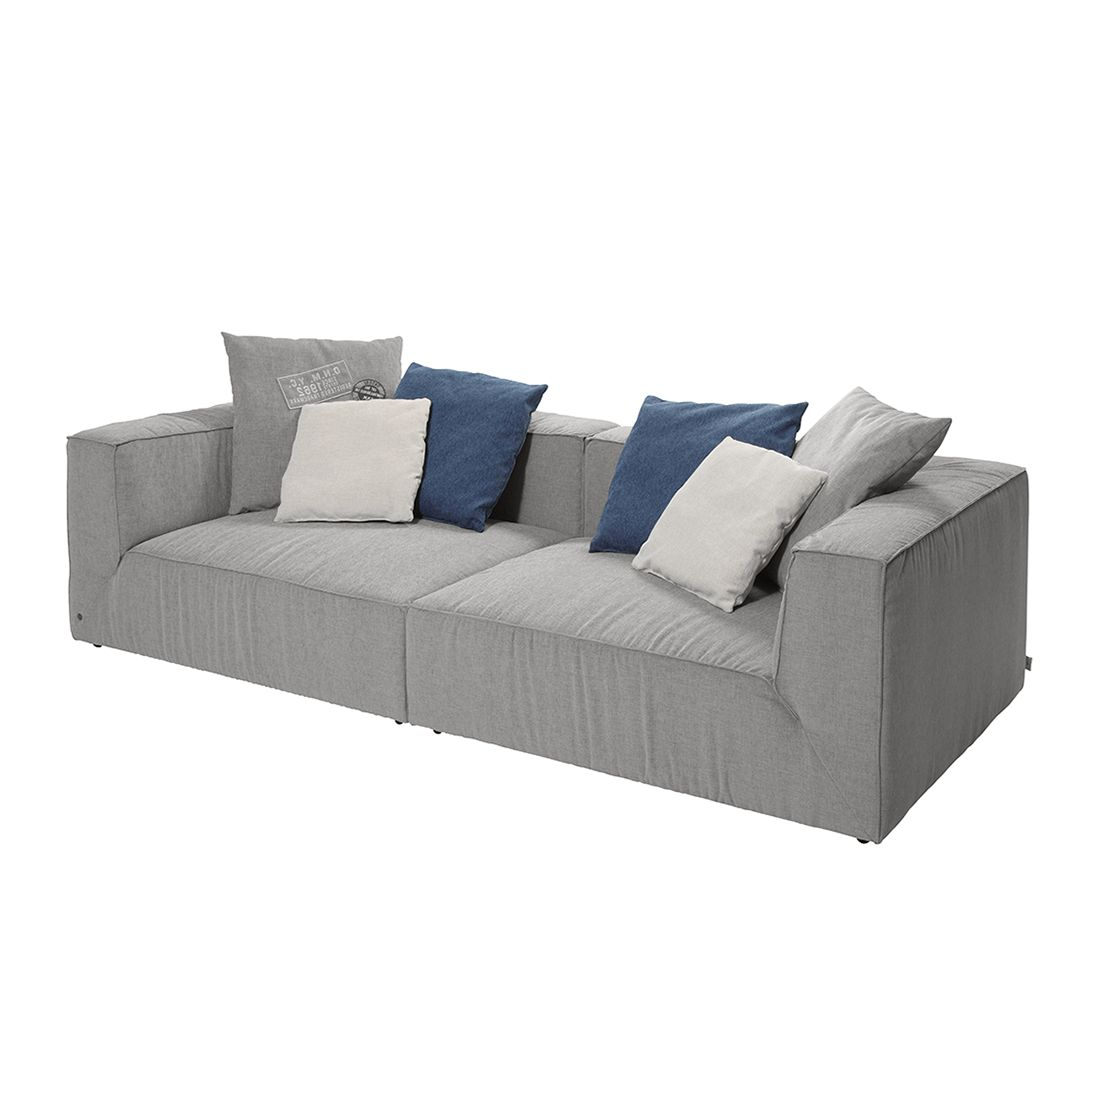 Full Size of Tom Tailor Sofa Elements Nordic Pure Heaven Casual Big Cube Style Chic West Coast Couch Xxl Fr Ein Modernes Zuhause Home24 Weiß Husse Antik Lila Barock Leder Sofa Tom Tailor Sofa